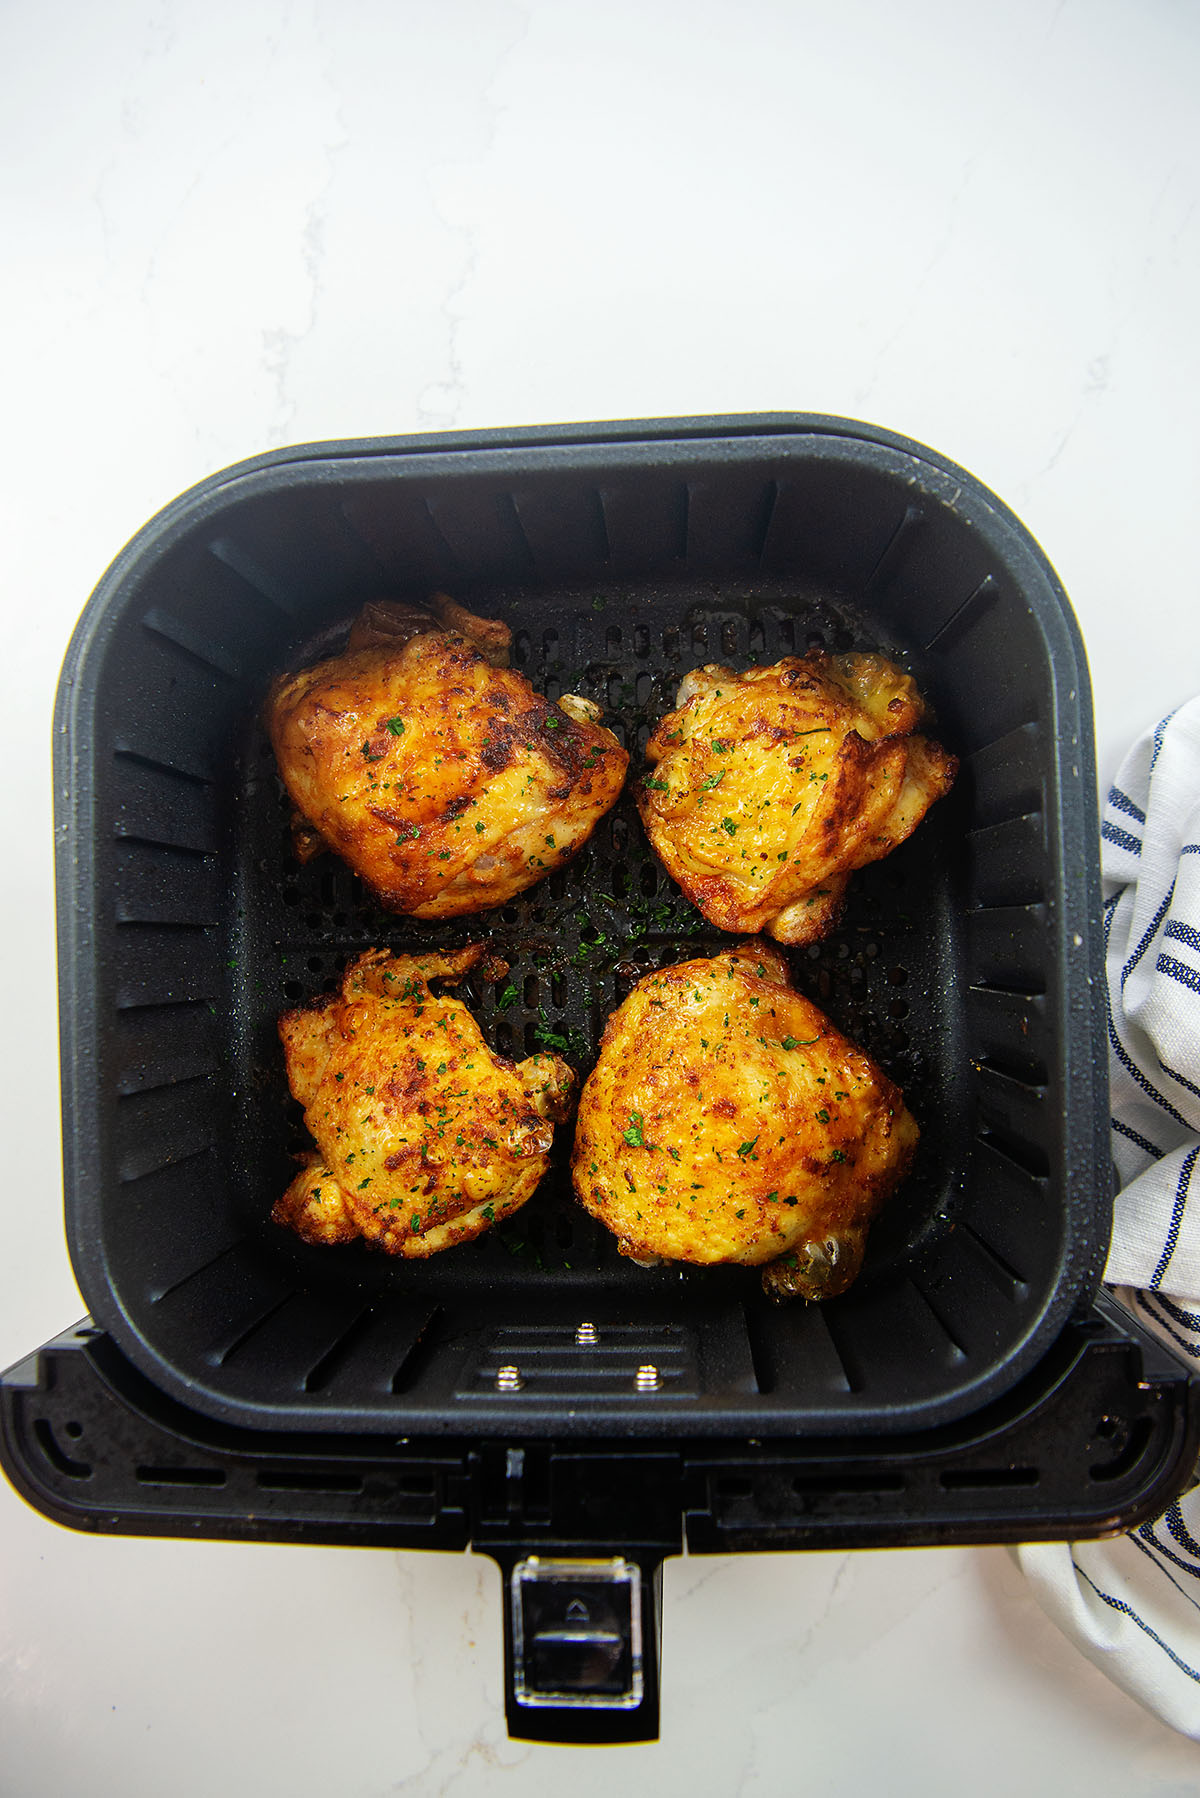 Overhead view of four chicken thighs in an air fryer basket on a white counter top.